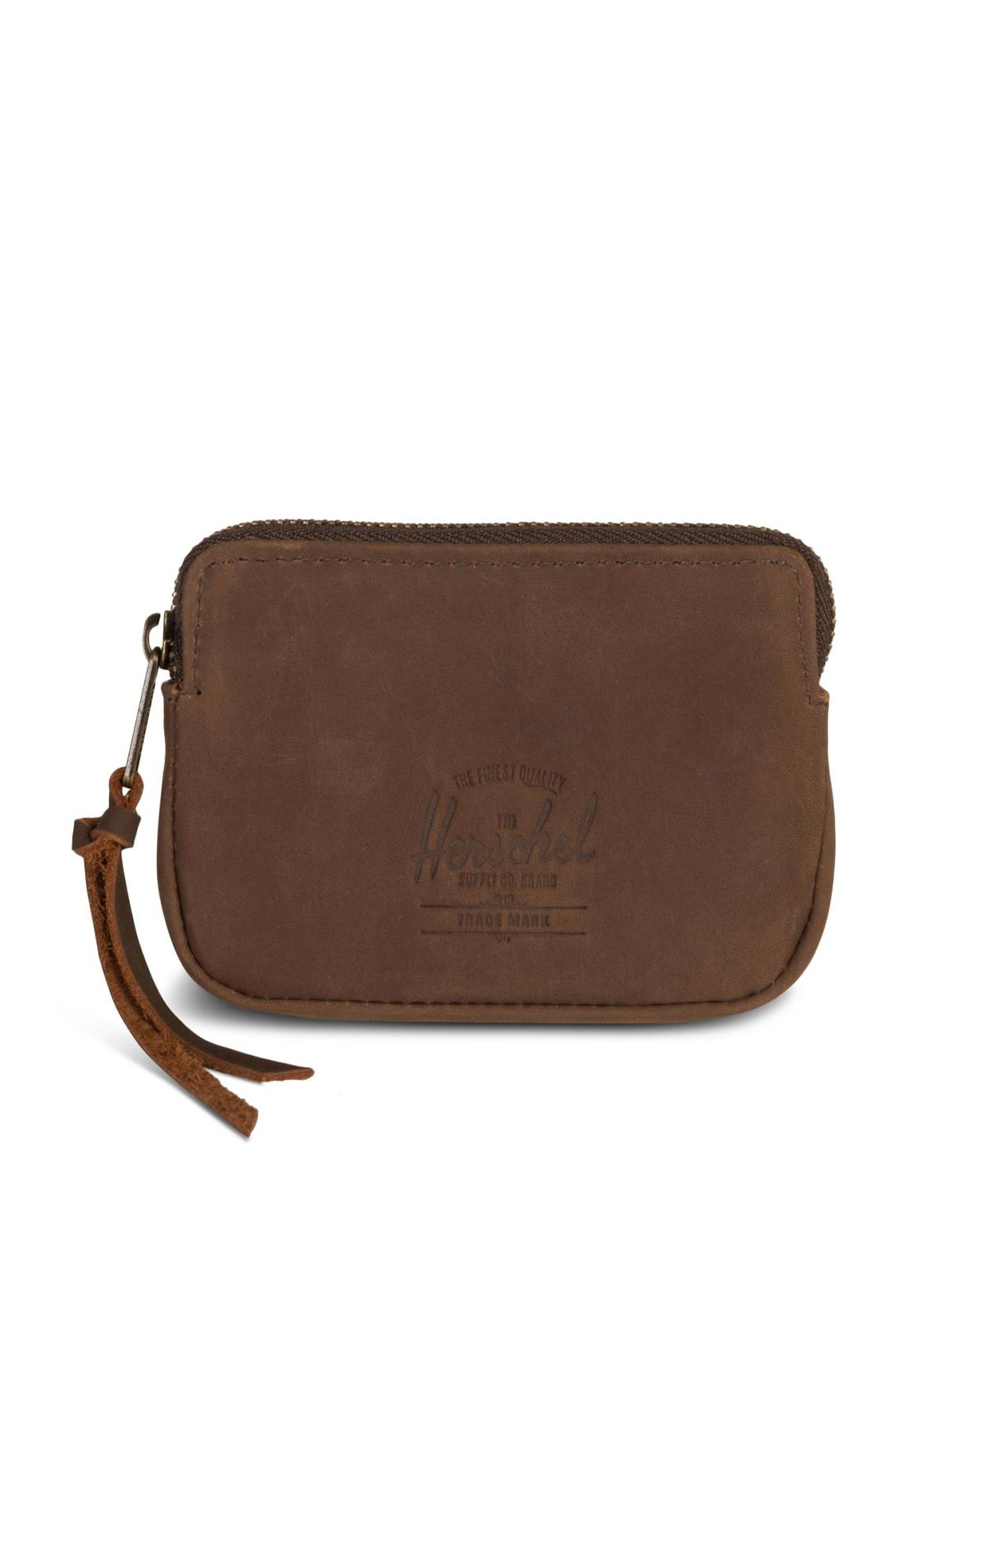 Oxford Wallet - Nubuck Brown Leather